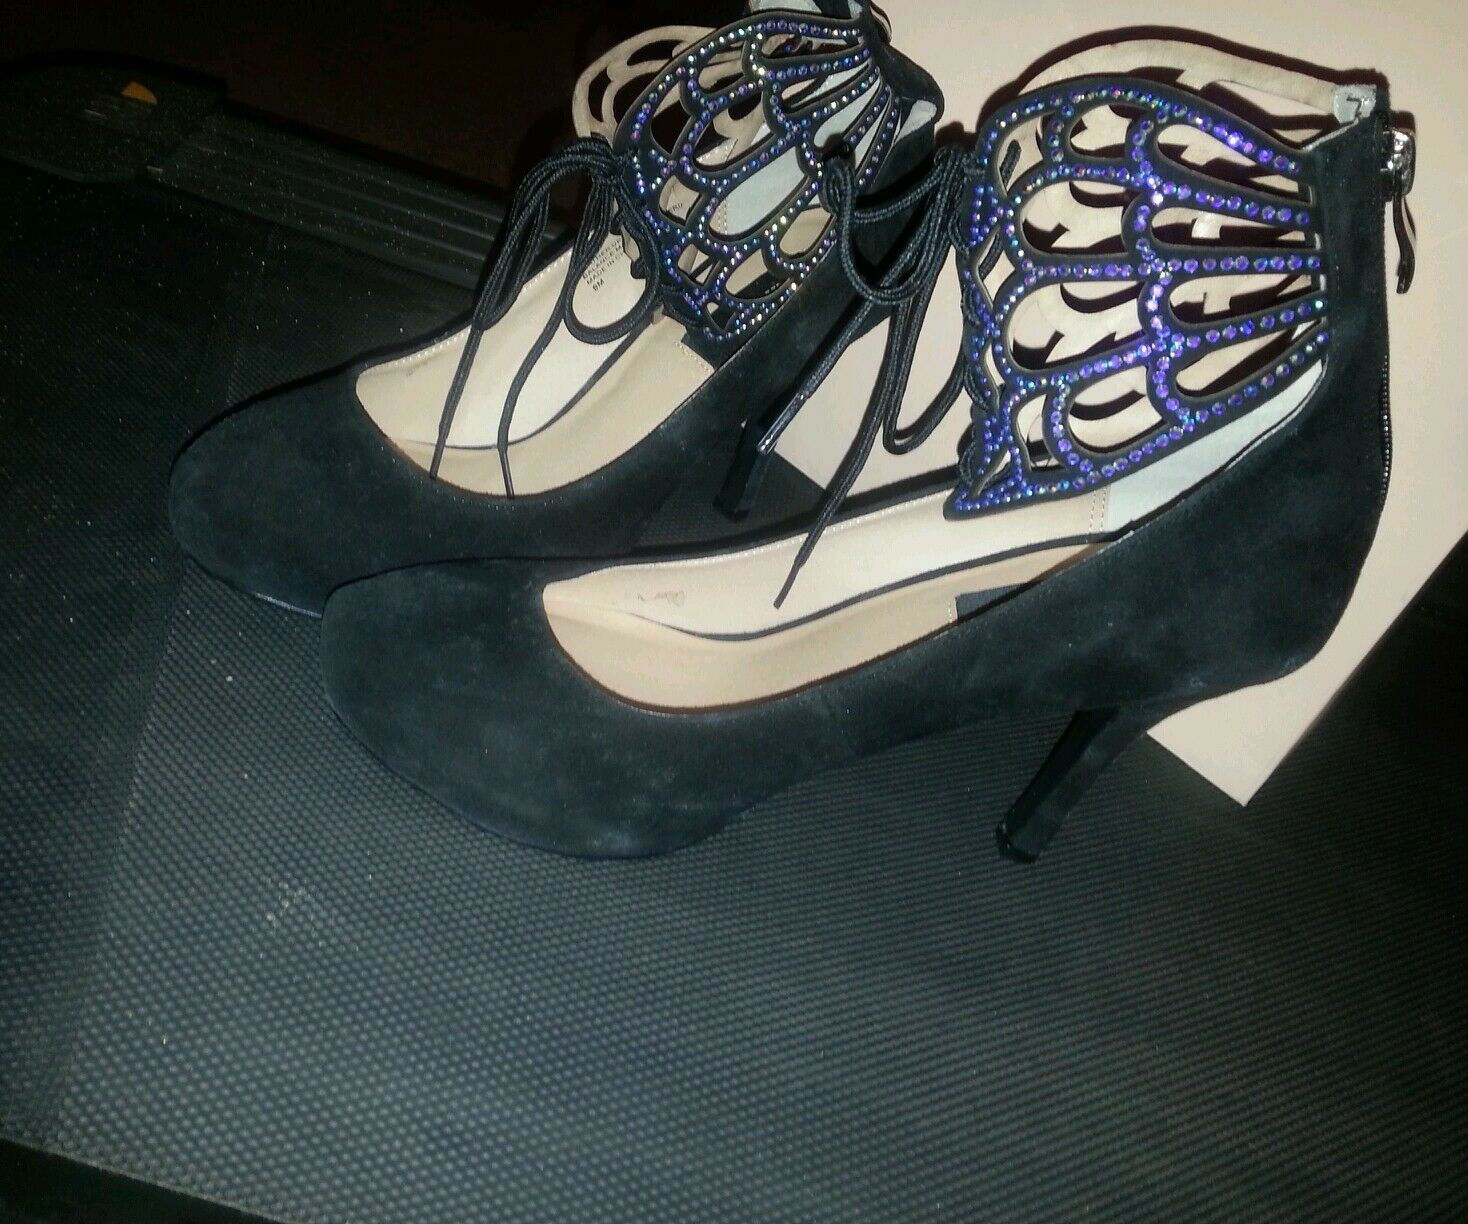 noir GLADIATOR LEATHER SUEDE PLATFORM chaussures W STONES & BACK ZIP-Taille 9 M